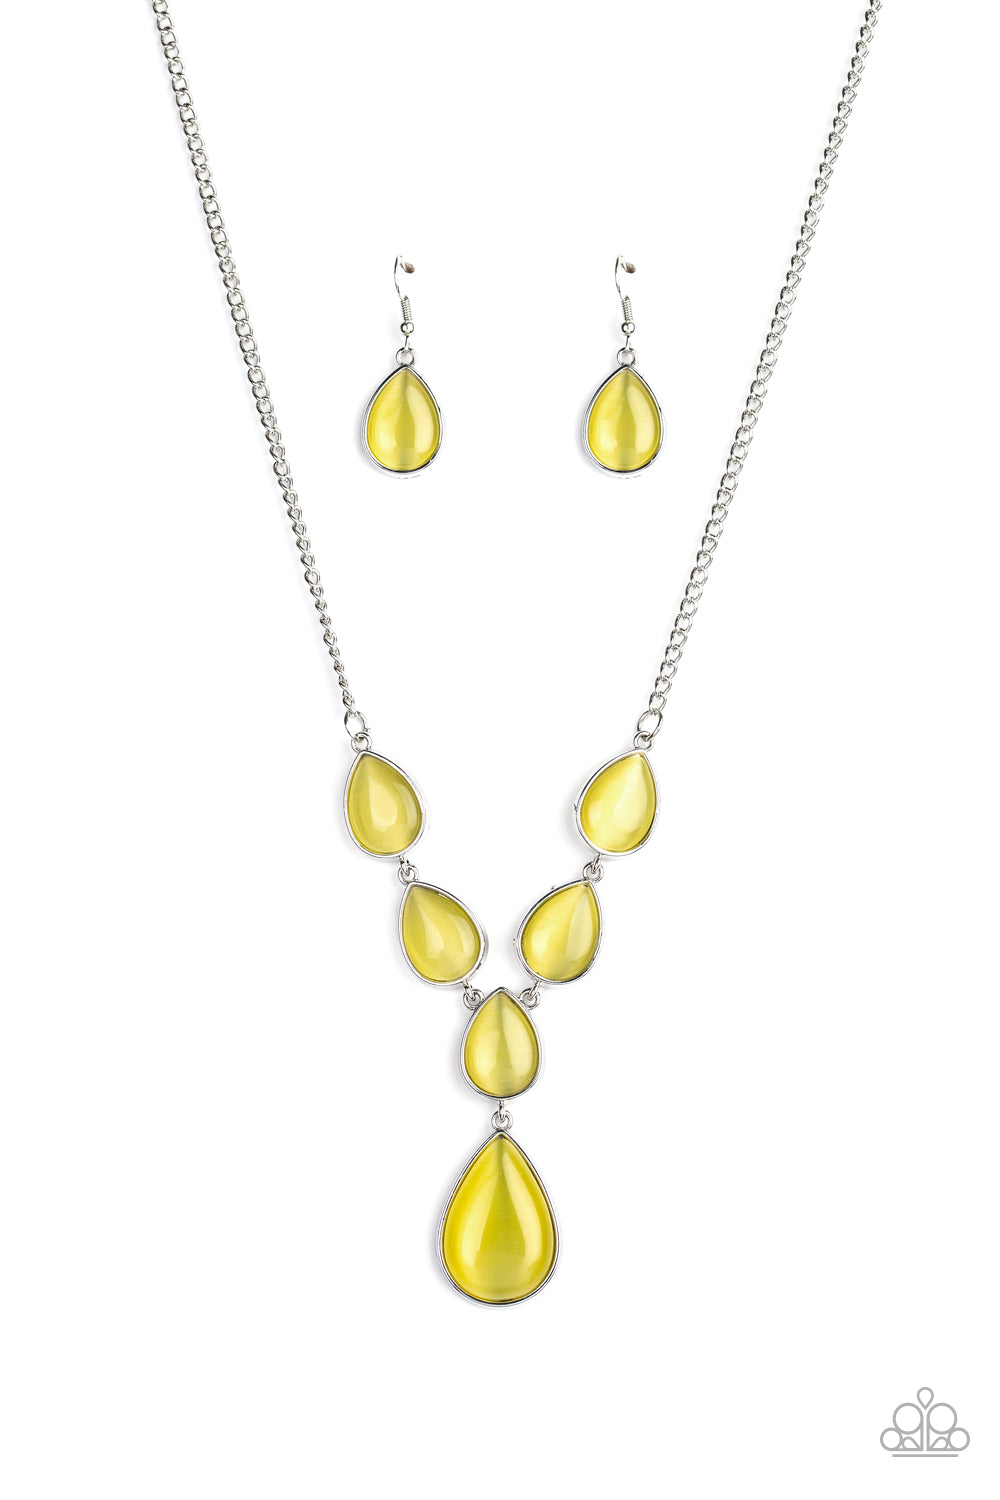 Dewy Decadence - Yellow - Paparazzi Accessories